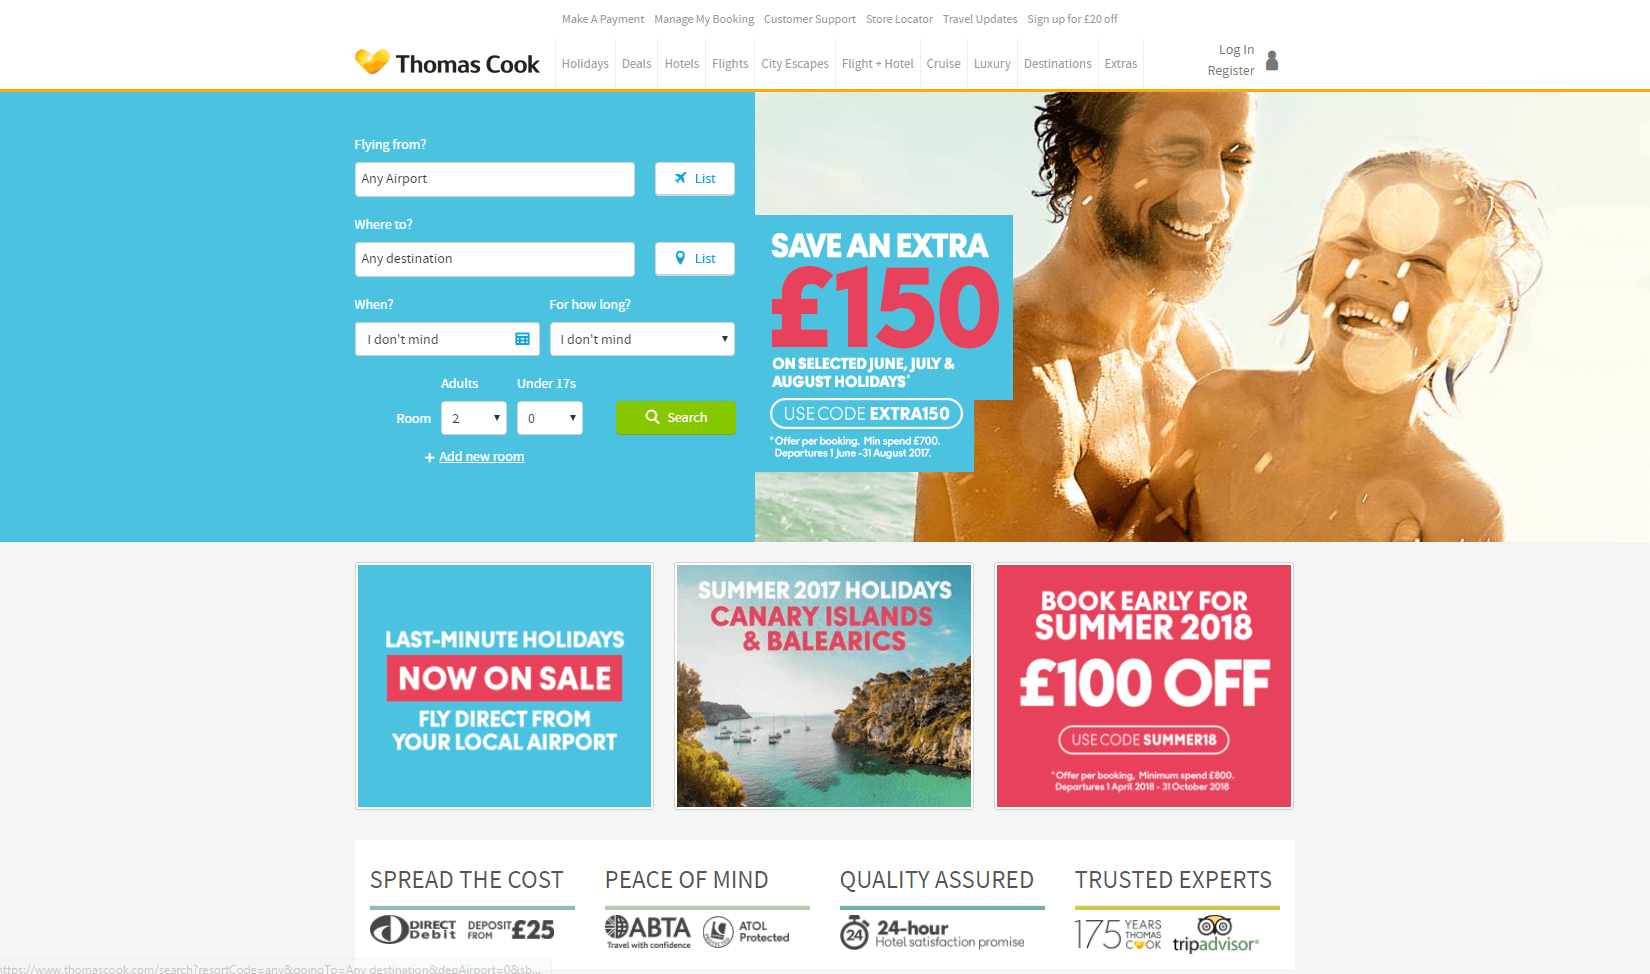 Voucher Your New Favourite Site! If you're looking for voucher codes then Voucher is bound to have exactly what you need. Every day our database of over 6, popular online stores is updated with all of the latest voucher codes, offers and deals so that you don't have to go anywhere else for all of the most up-to-date and valid discounts.